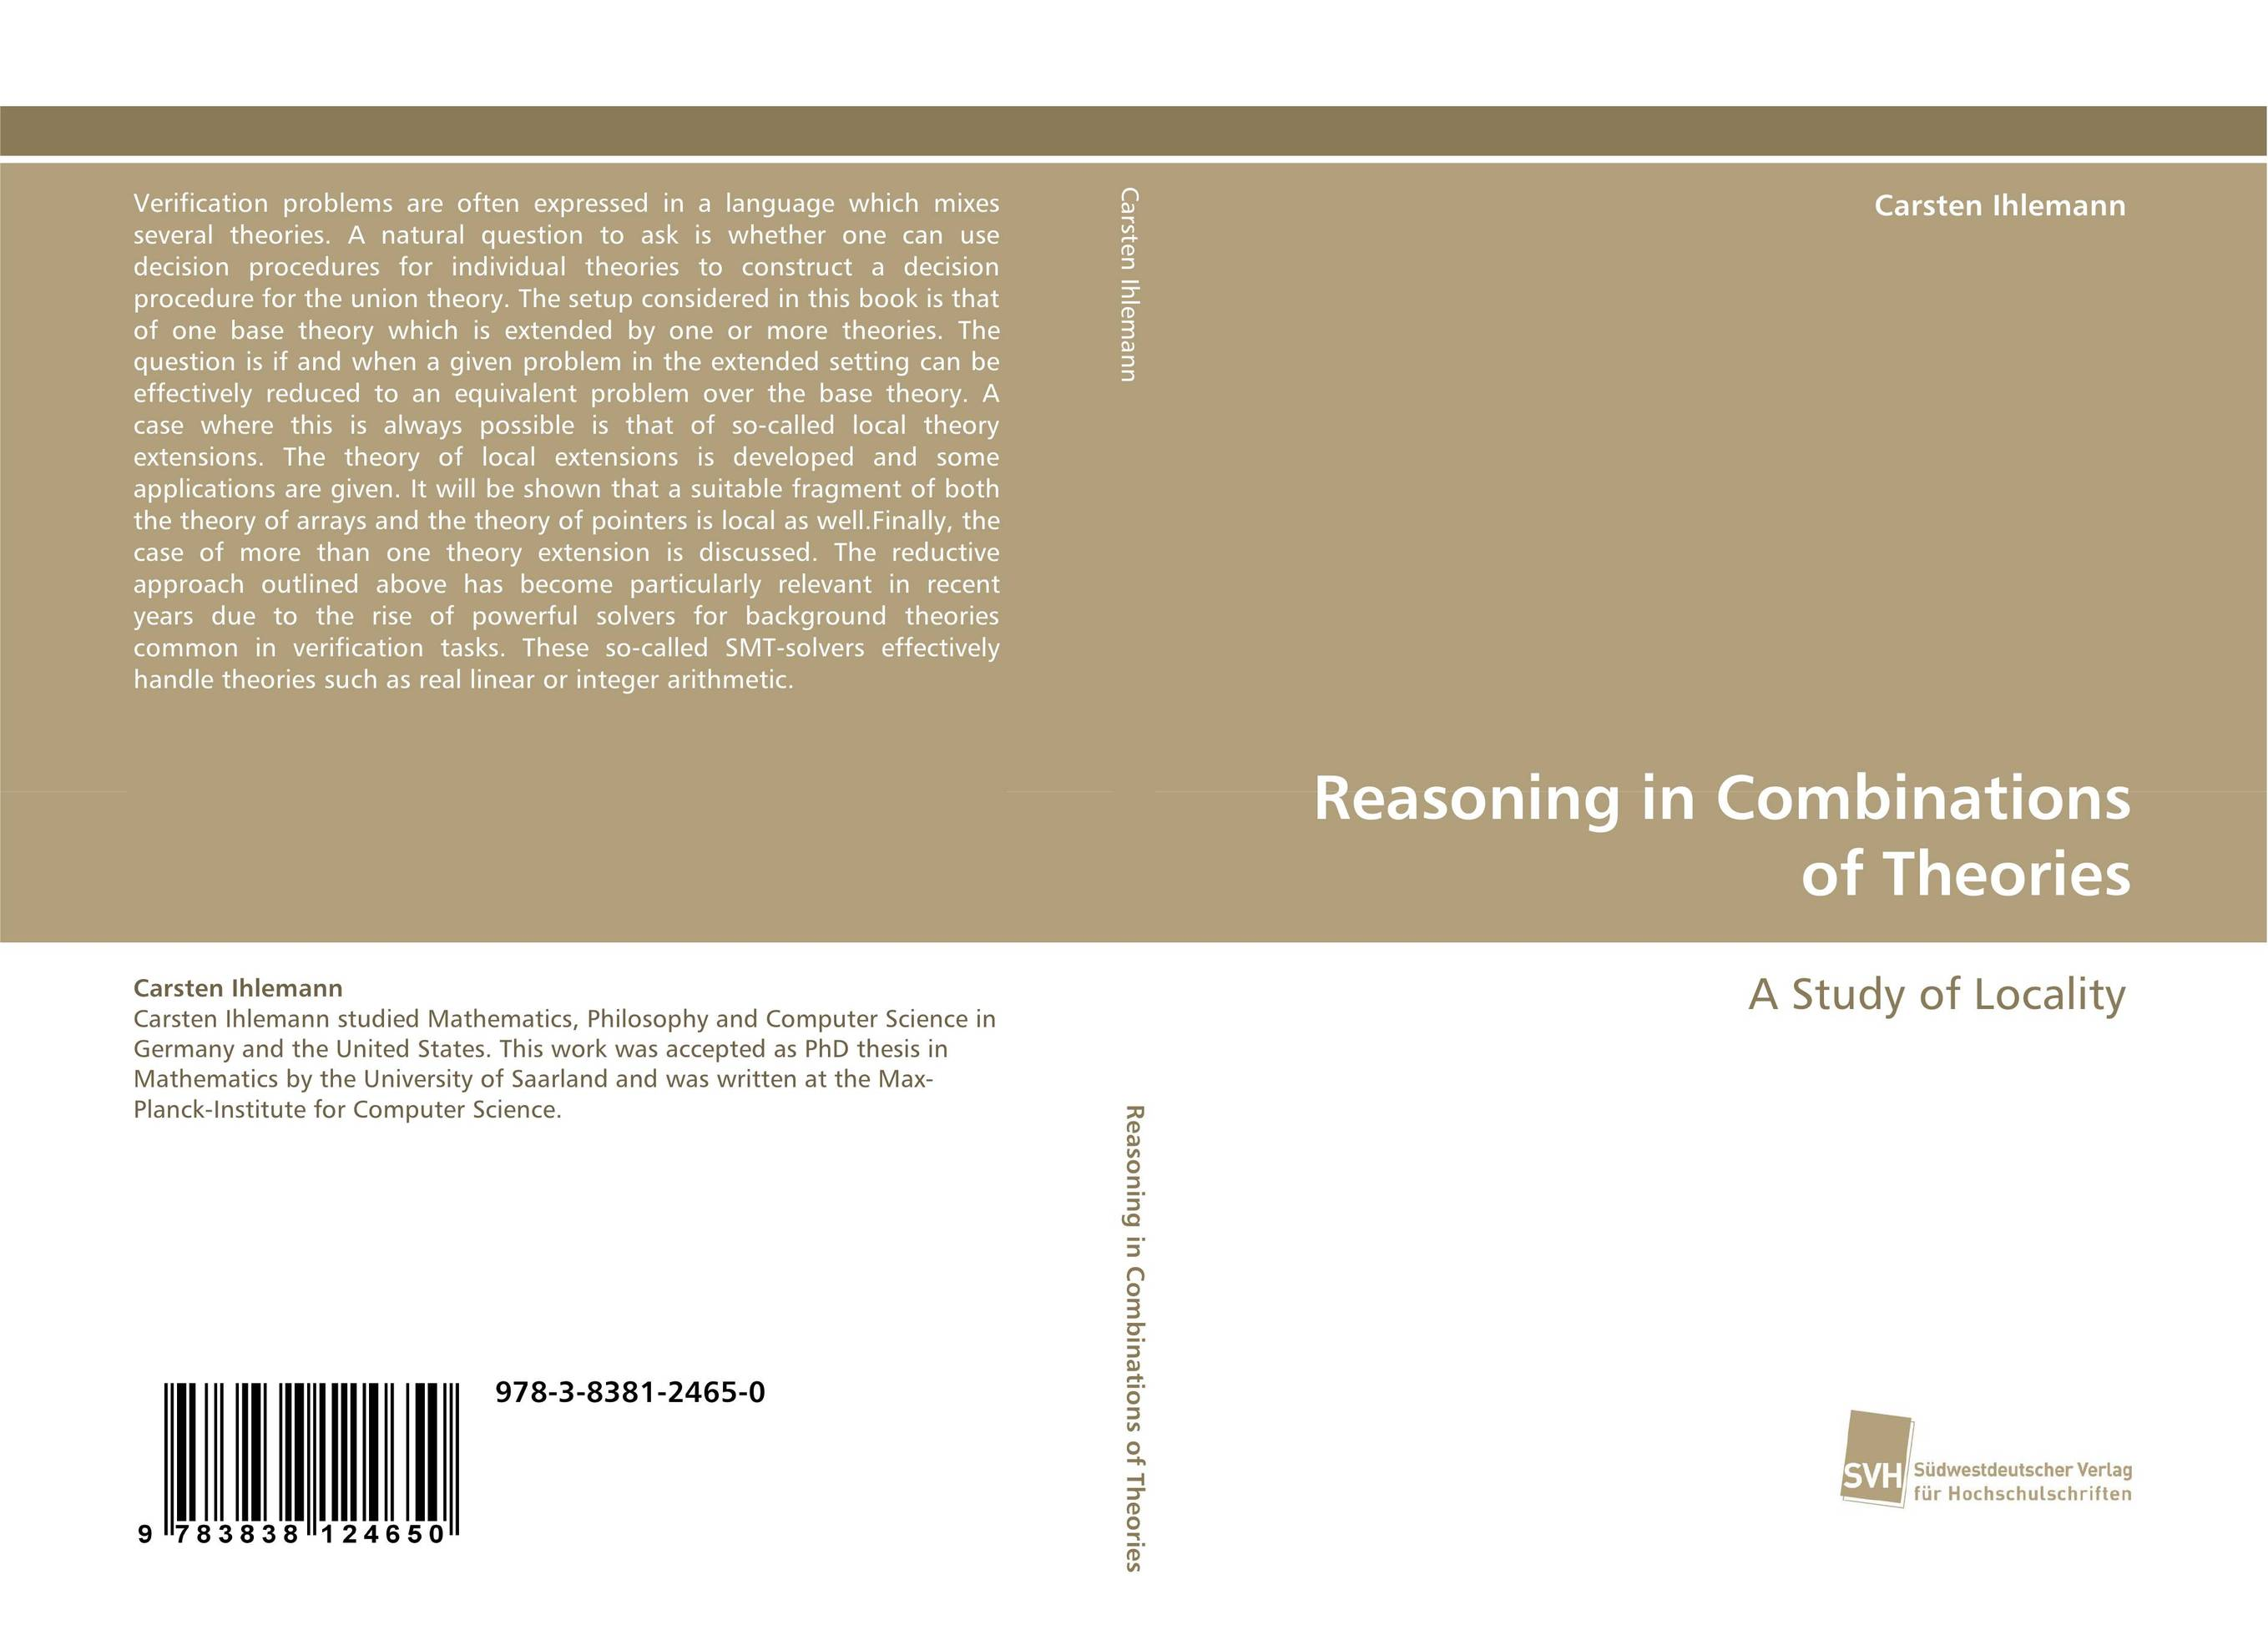 Reasoning in Combinations of Theories permutation orbifolds in conformal field theories and string theory